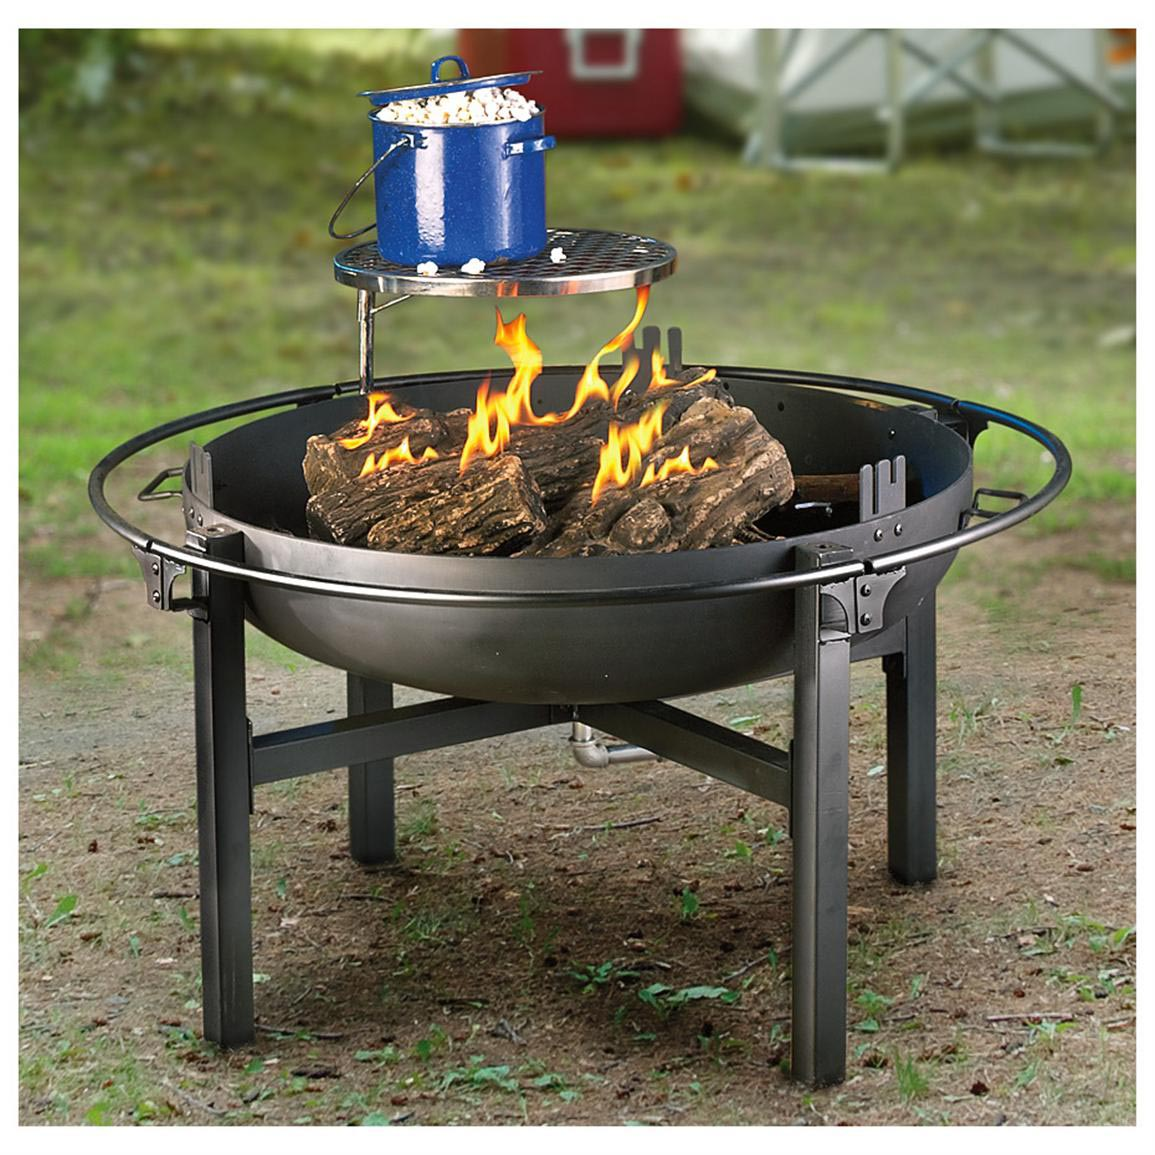 Dallas cowboys fire pit